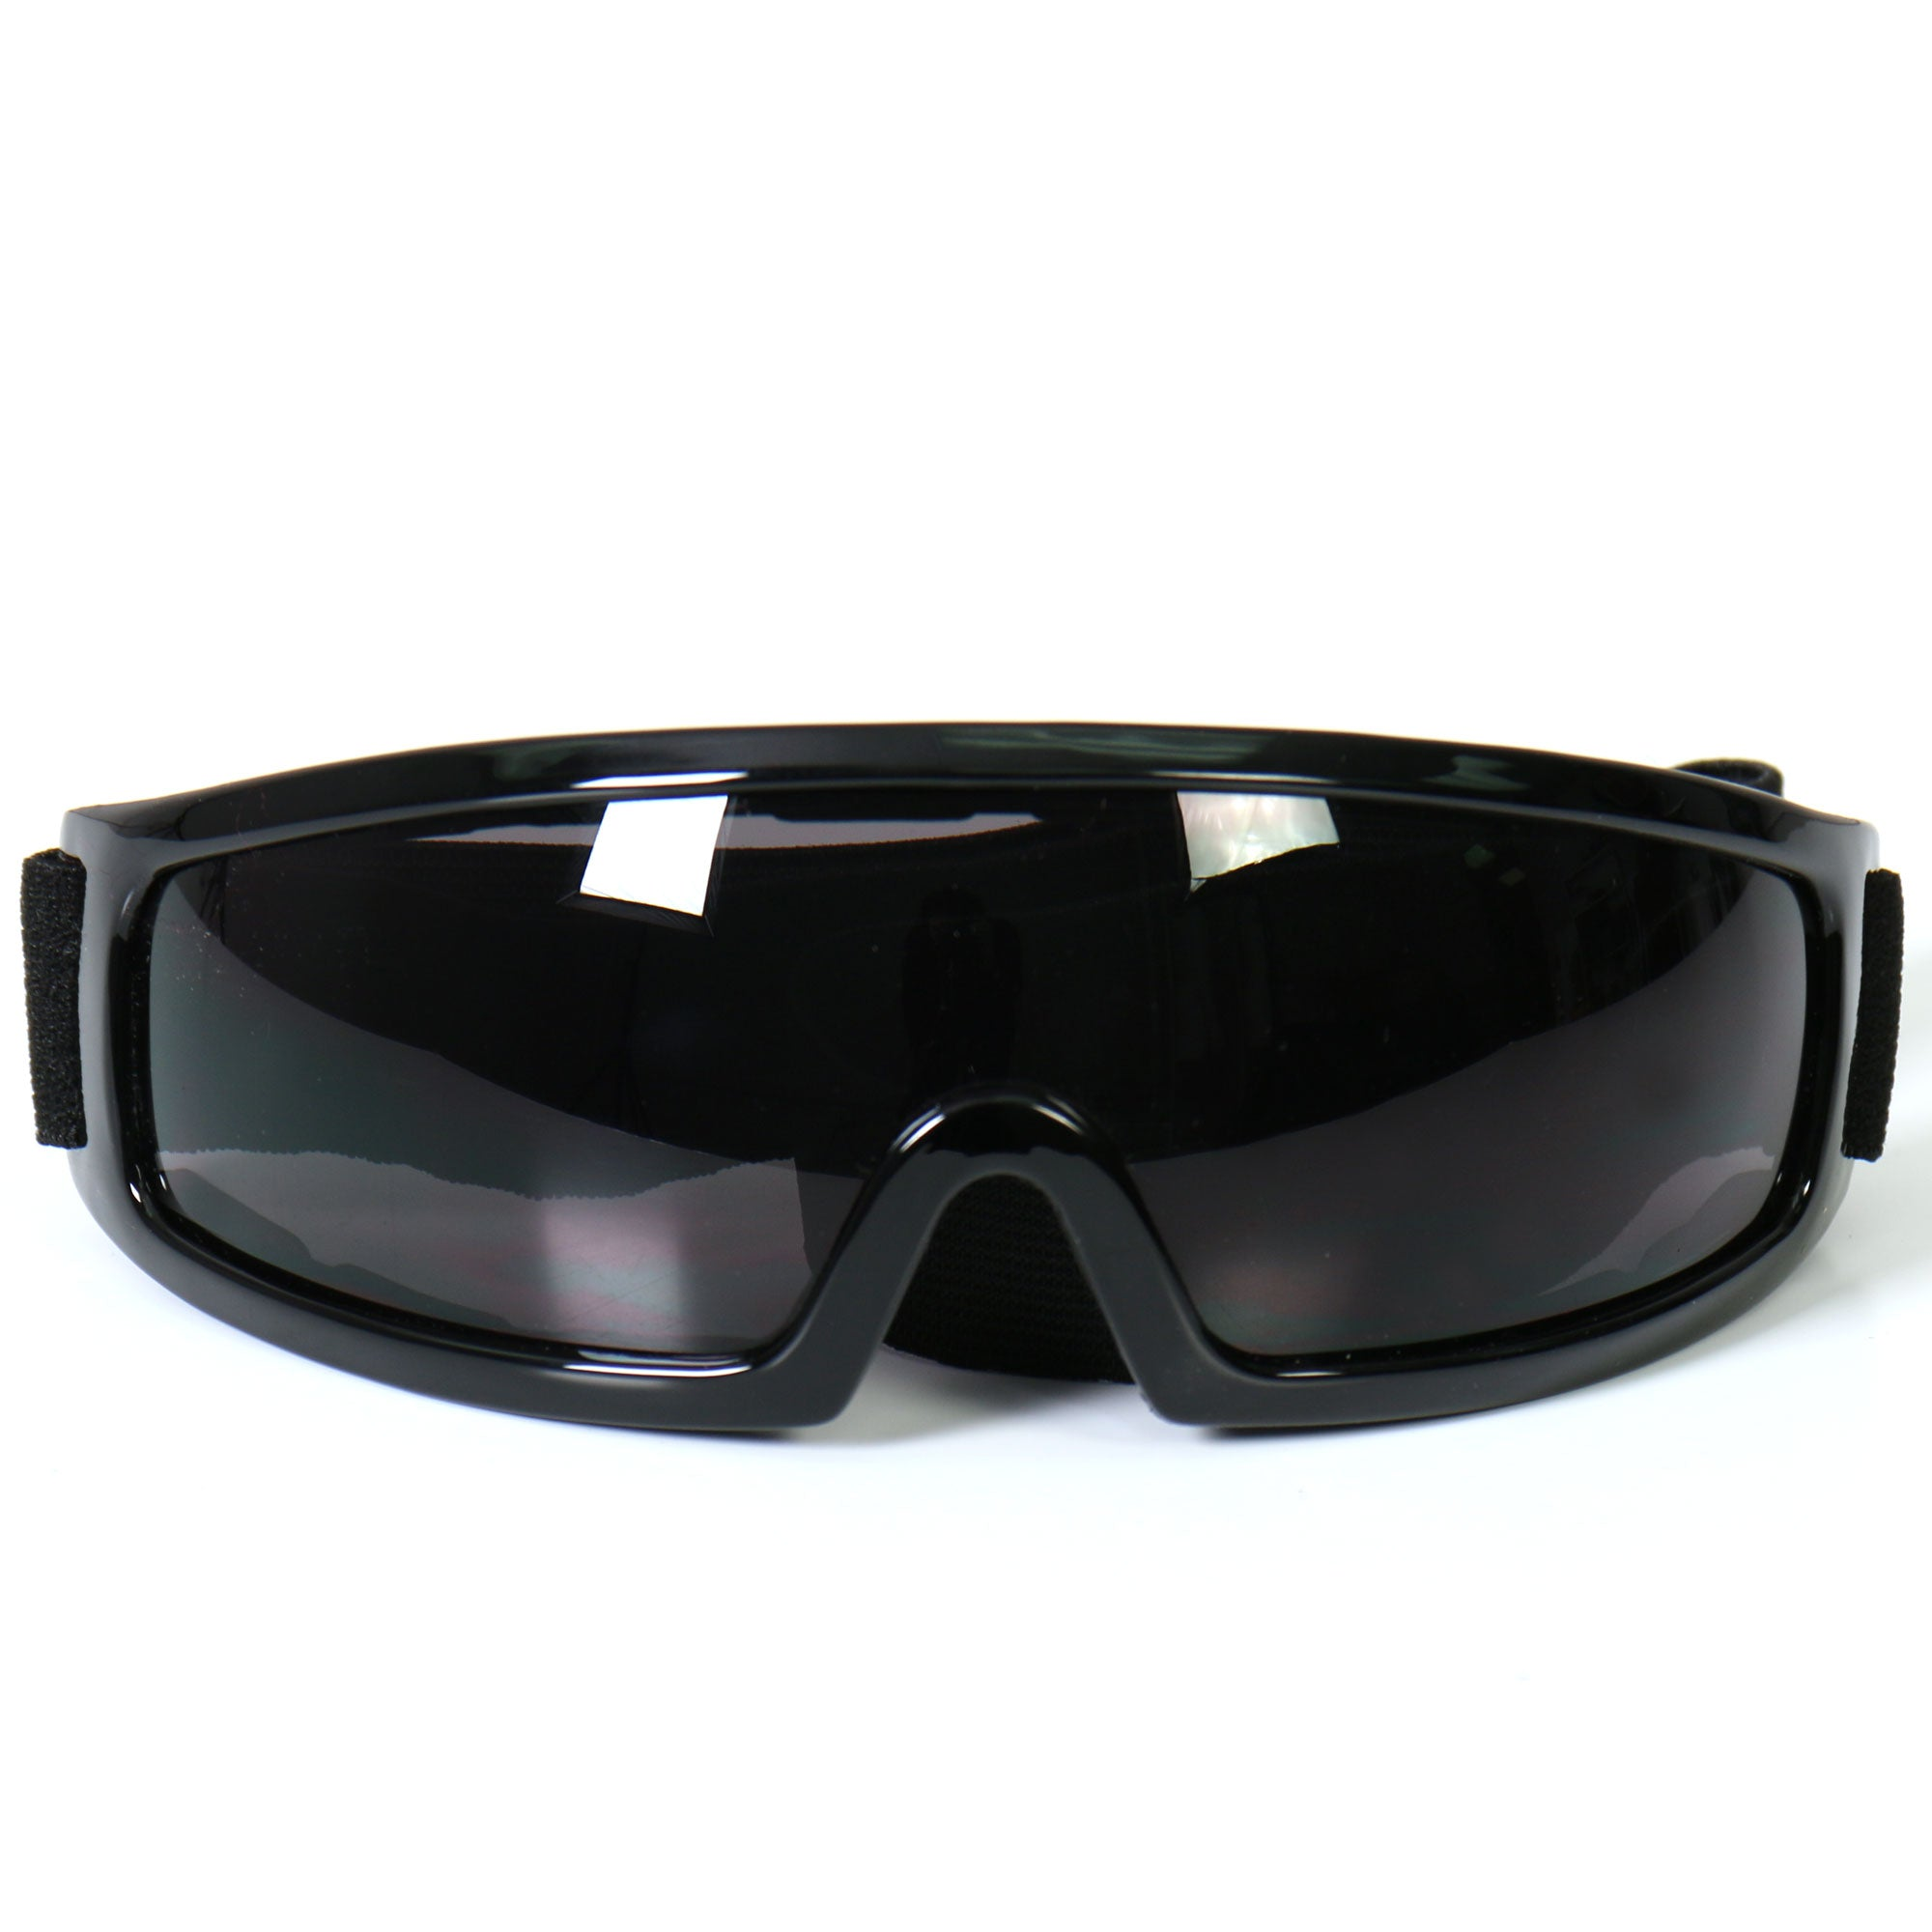 Hot Leathers Dominator Motorcycle Goggles